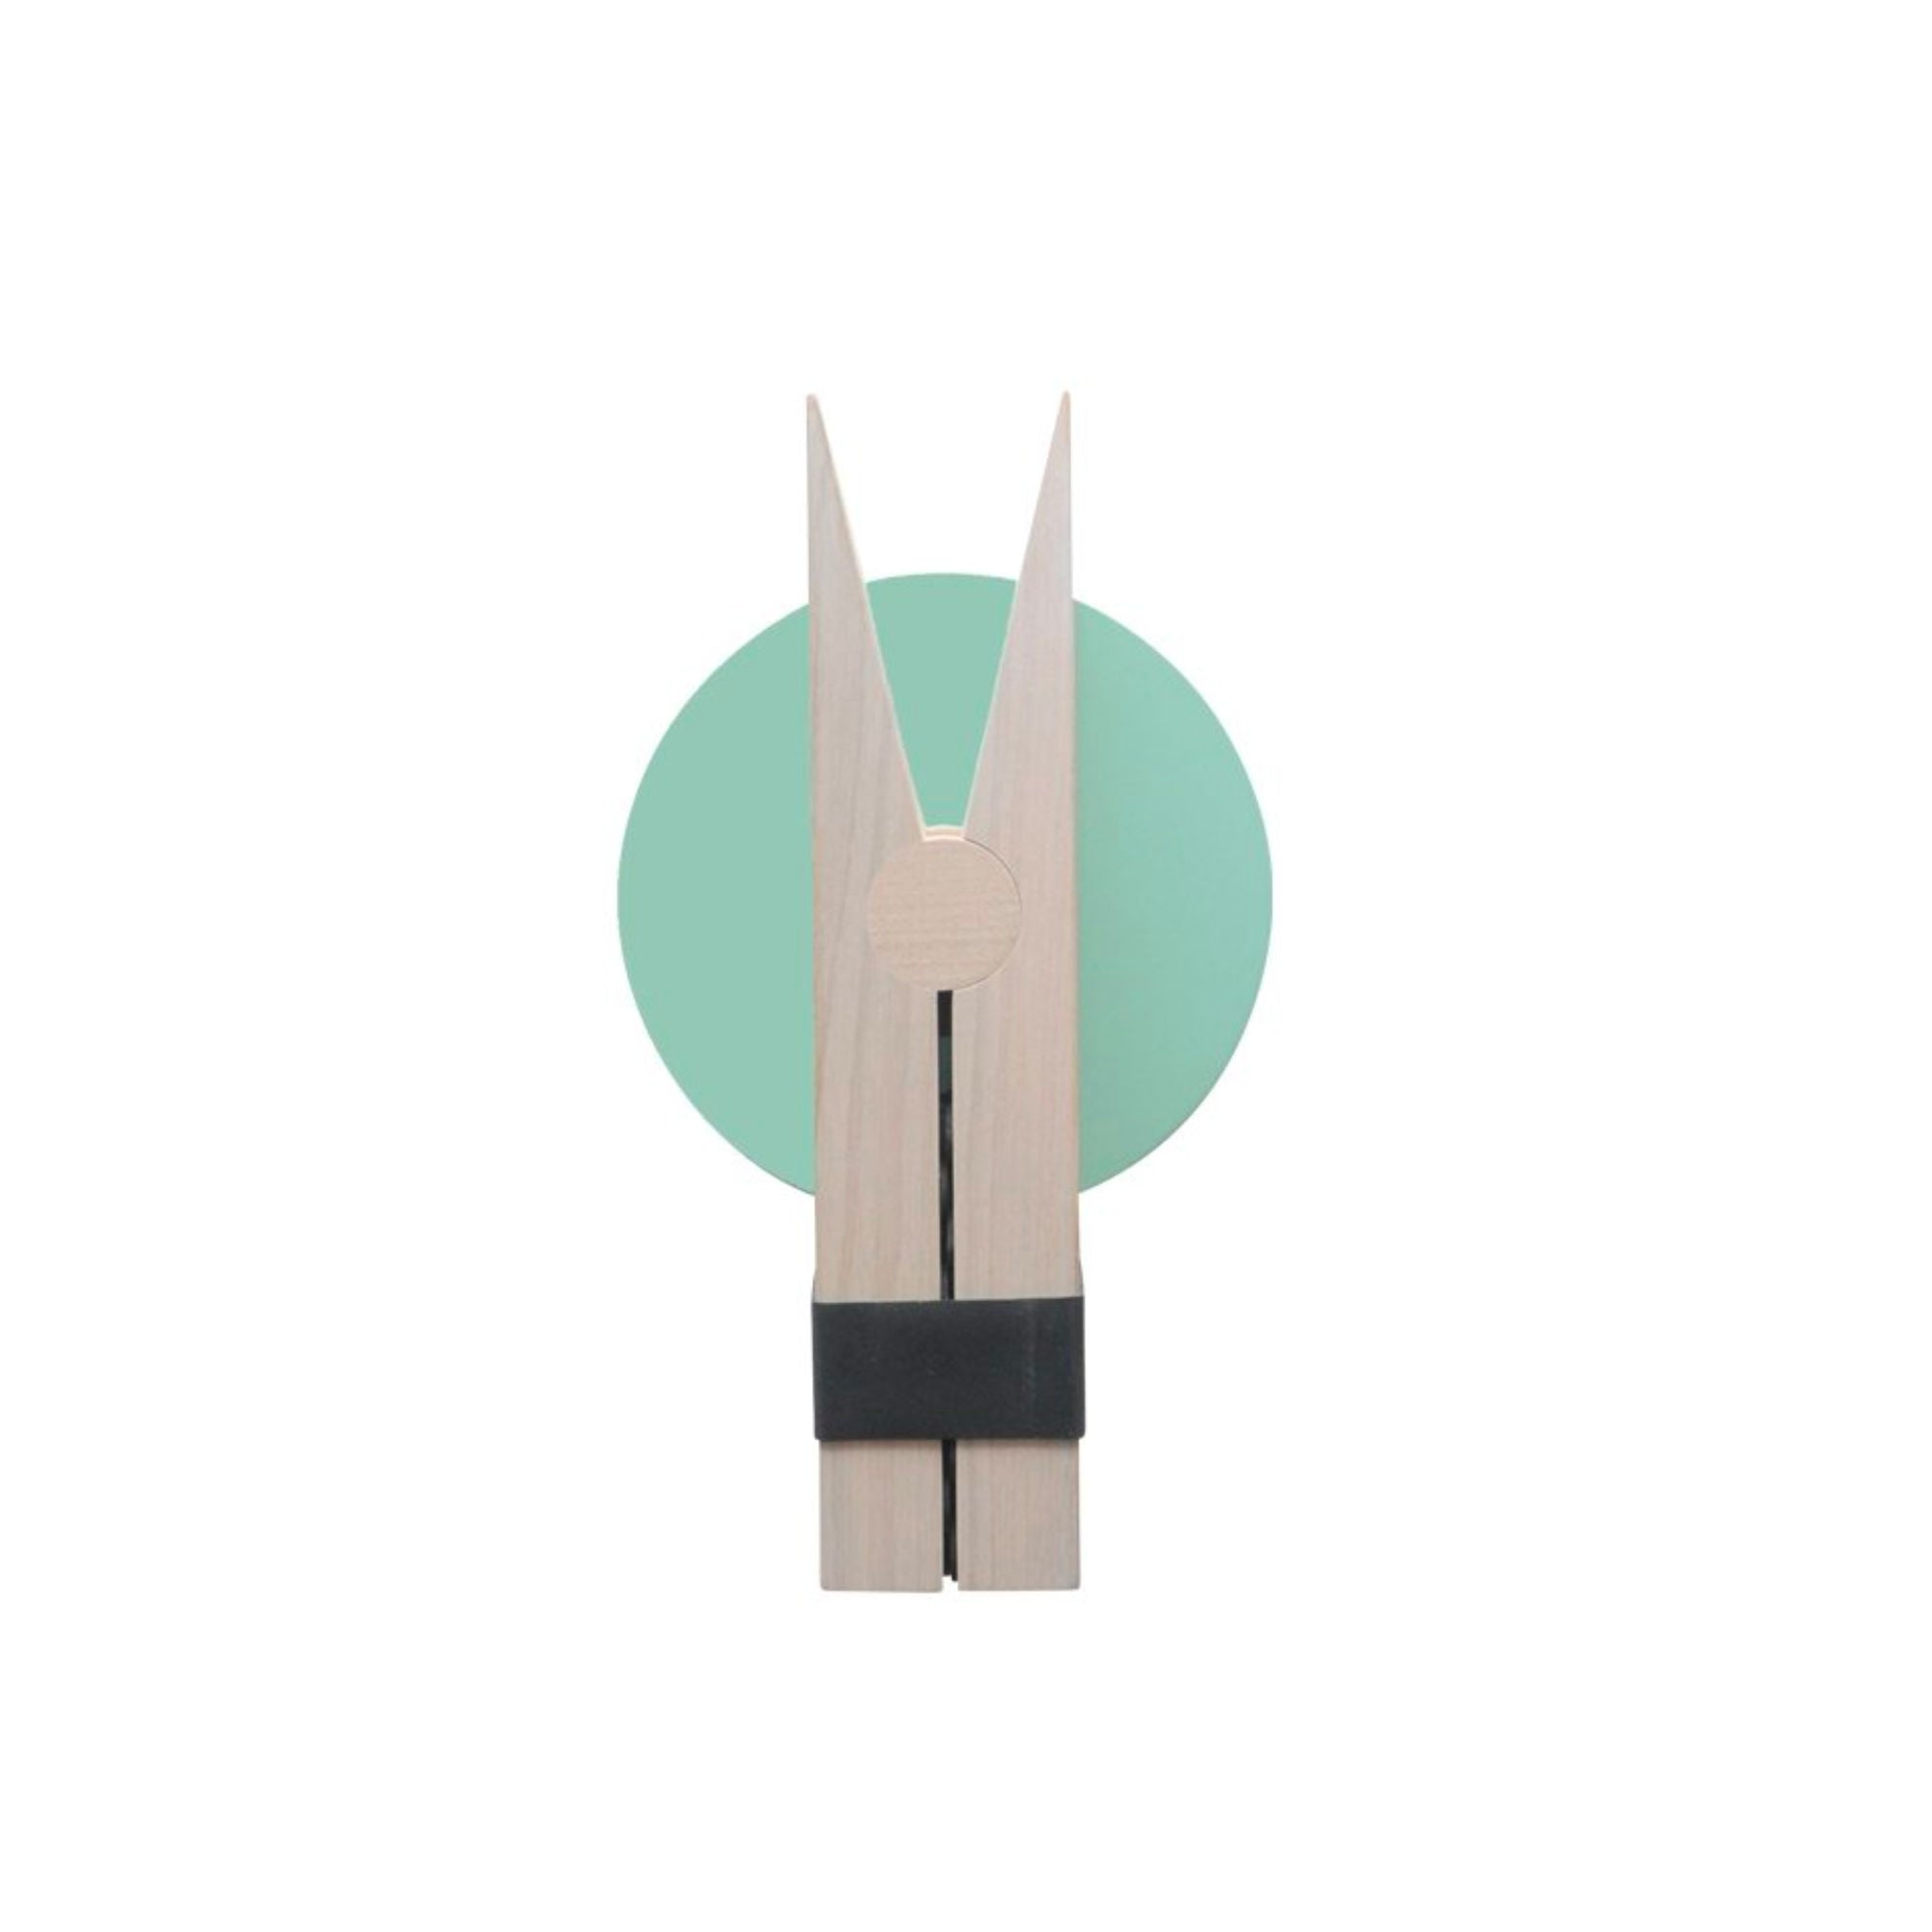 Lucie Kaas Peggy Clips , Mint Gree